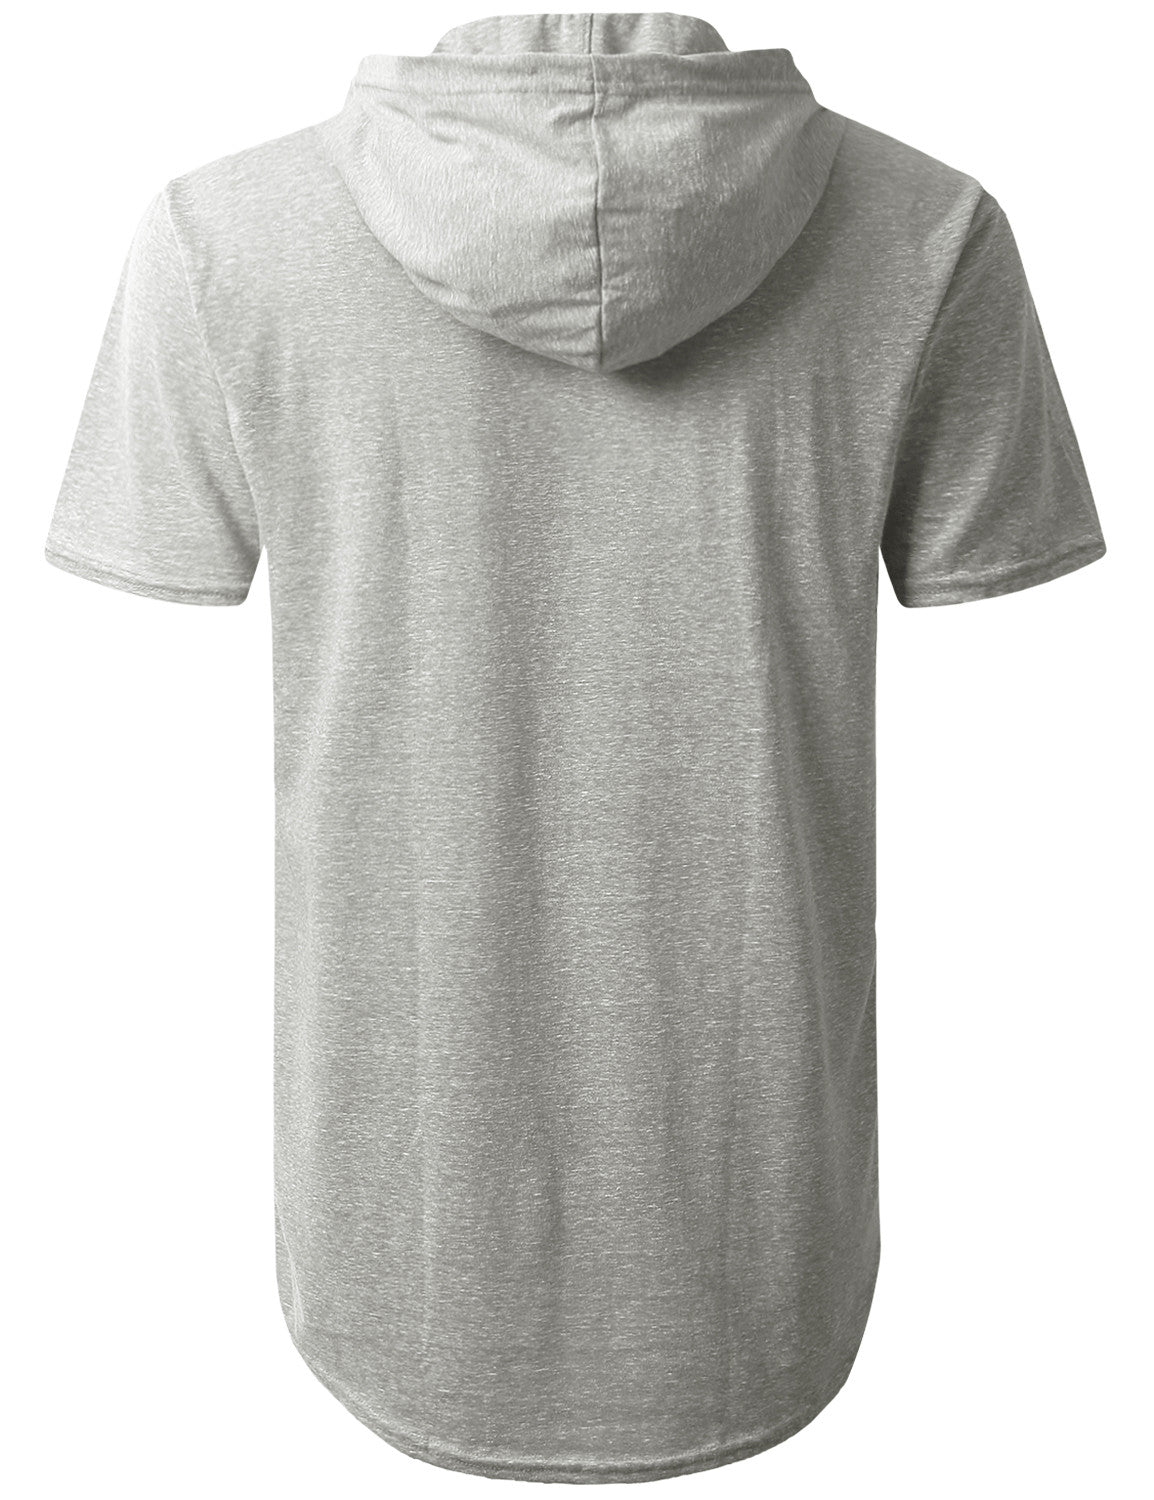 GRAY Melange Pocket Short Sleeve Hoodie - URBANCREWS